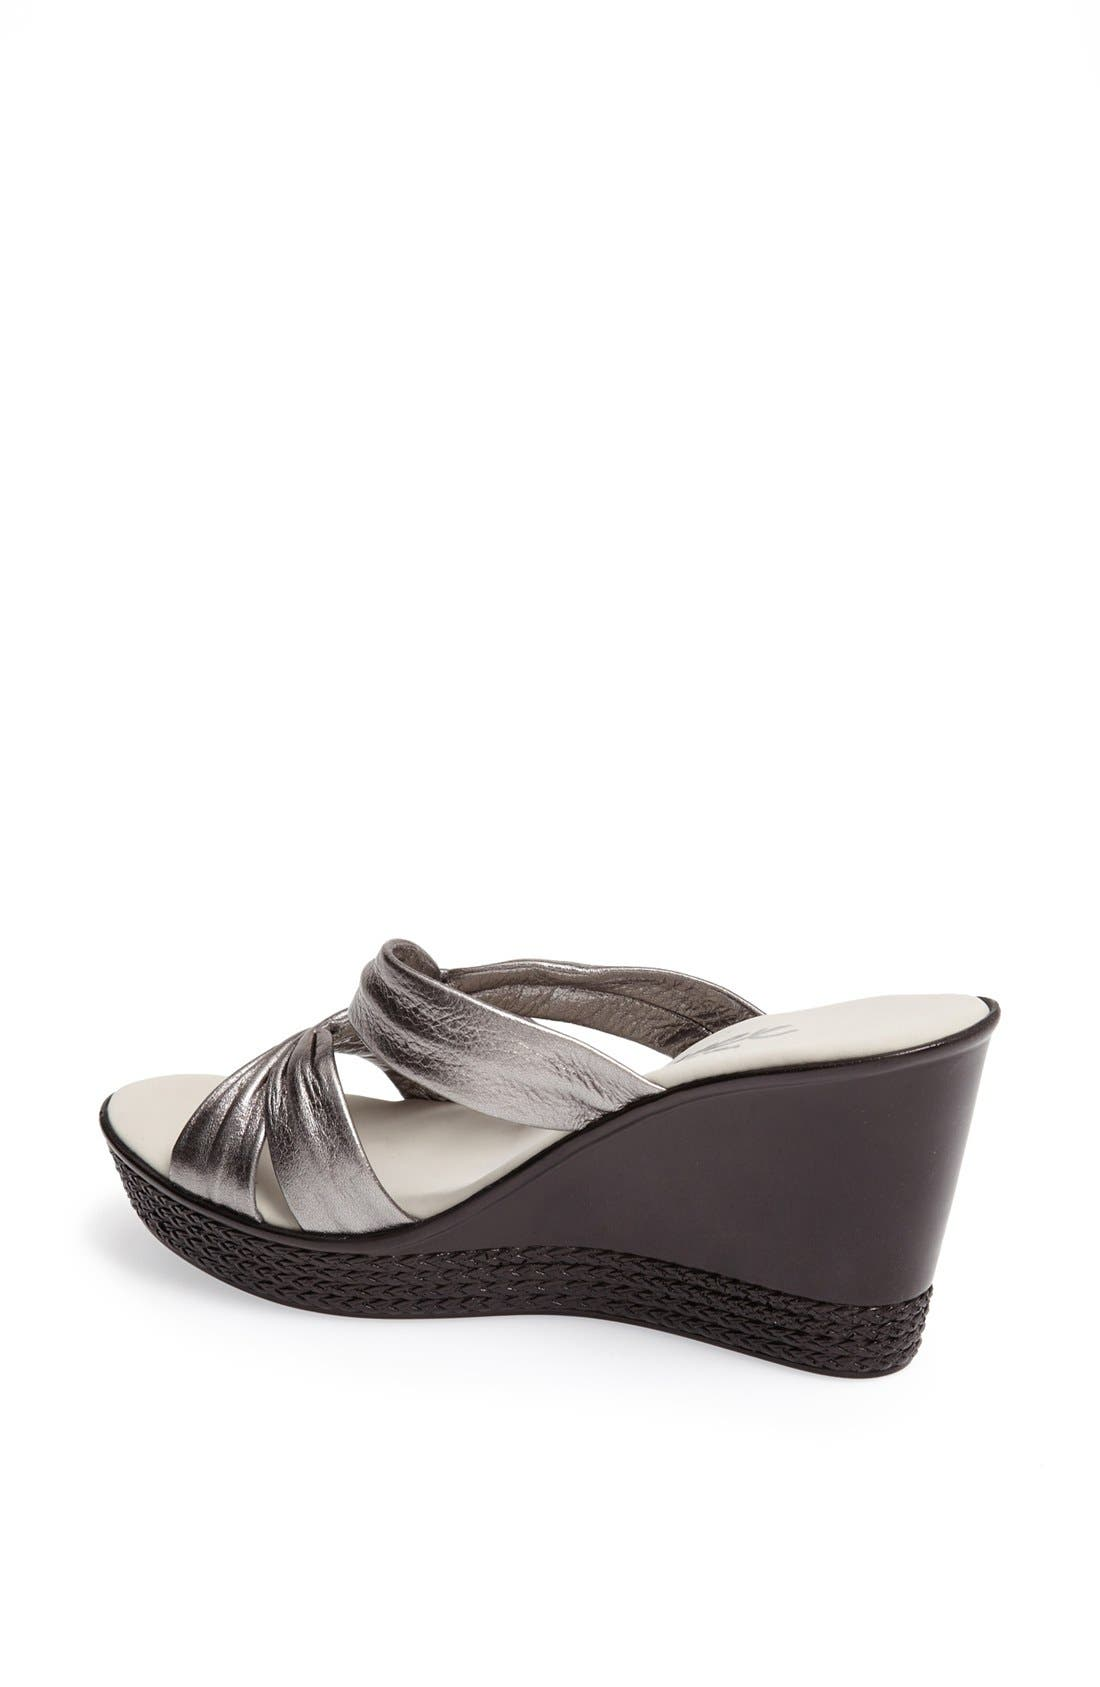 Alternate Image 2  - Onex 'Felicity' Wedge Sandal